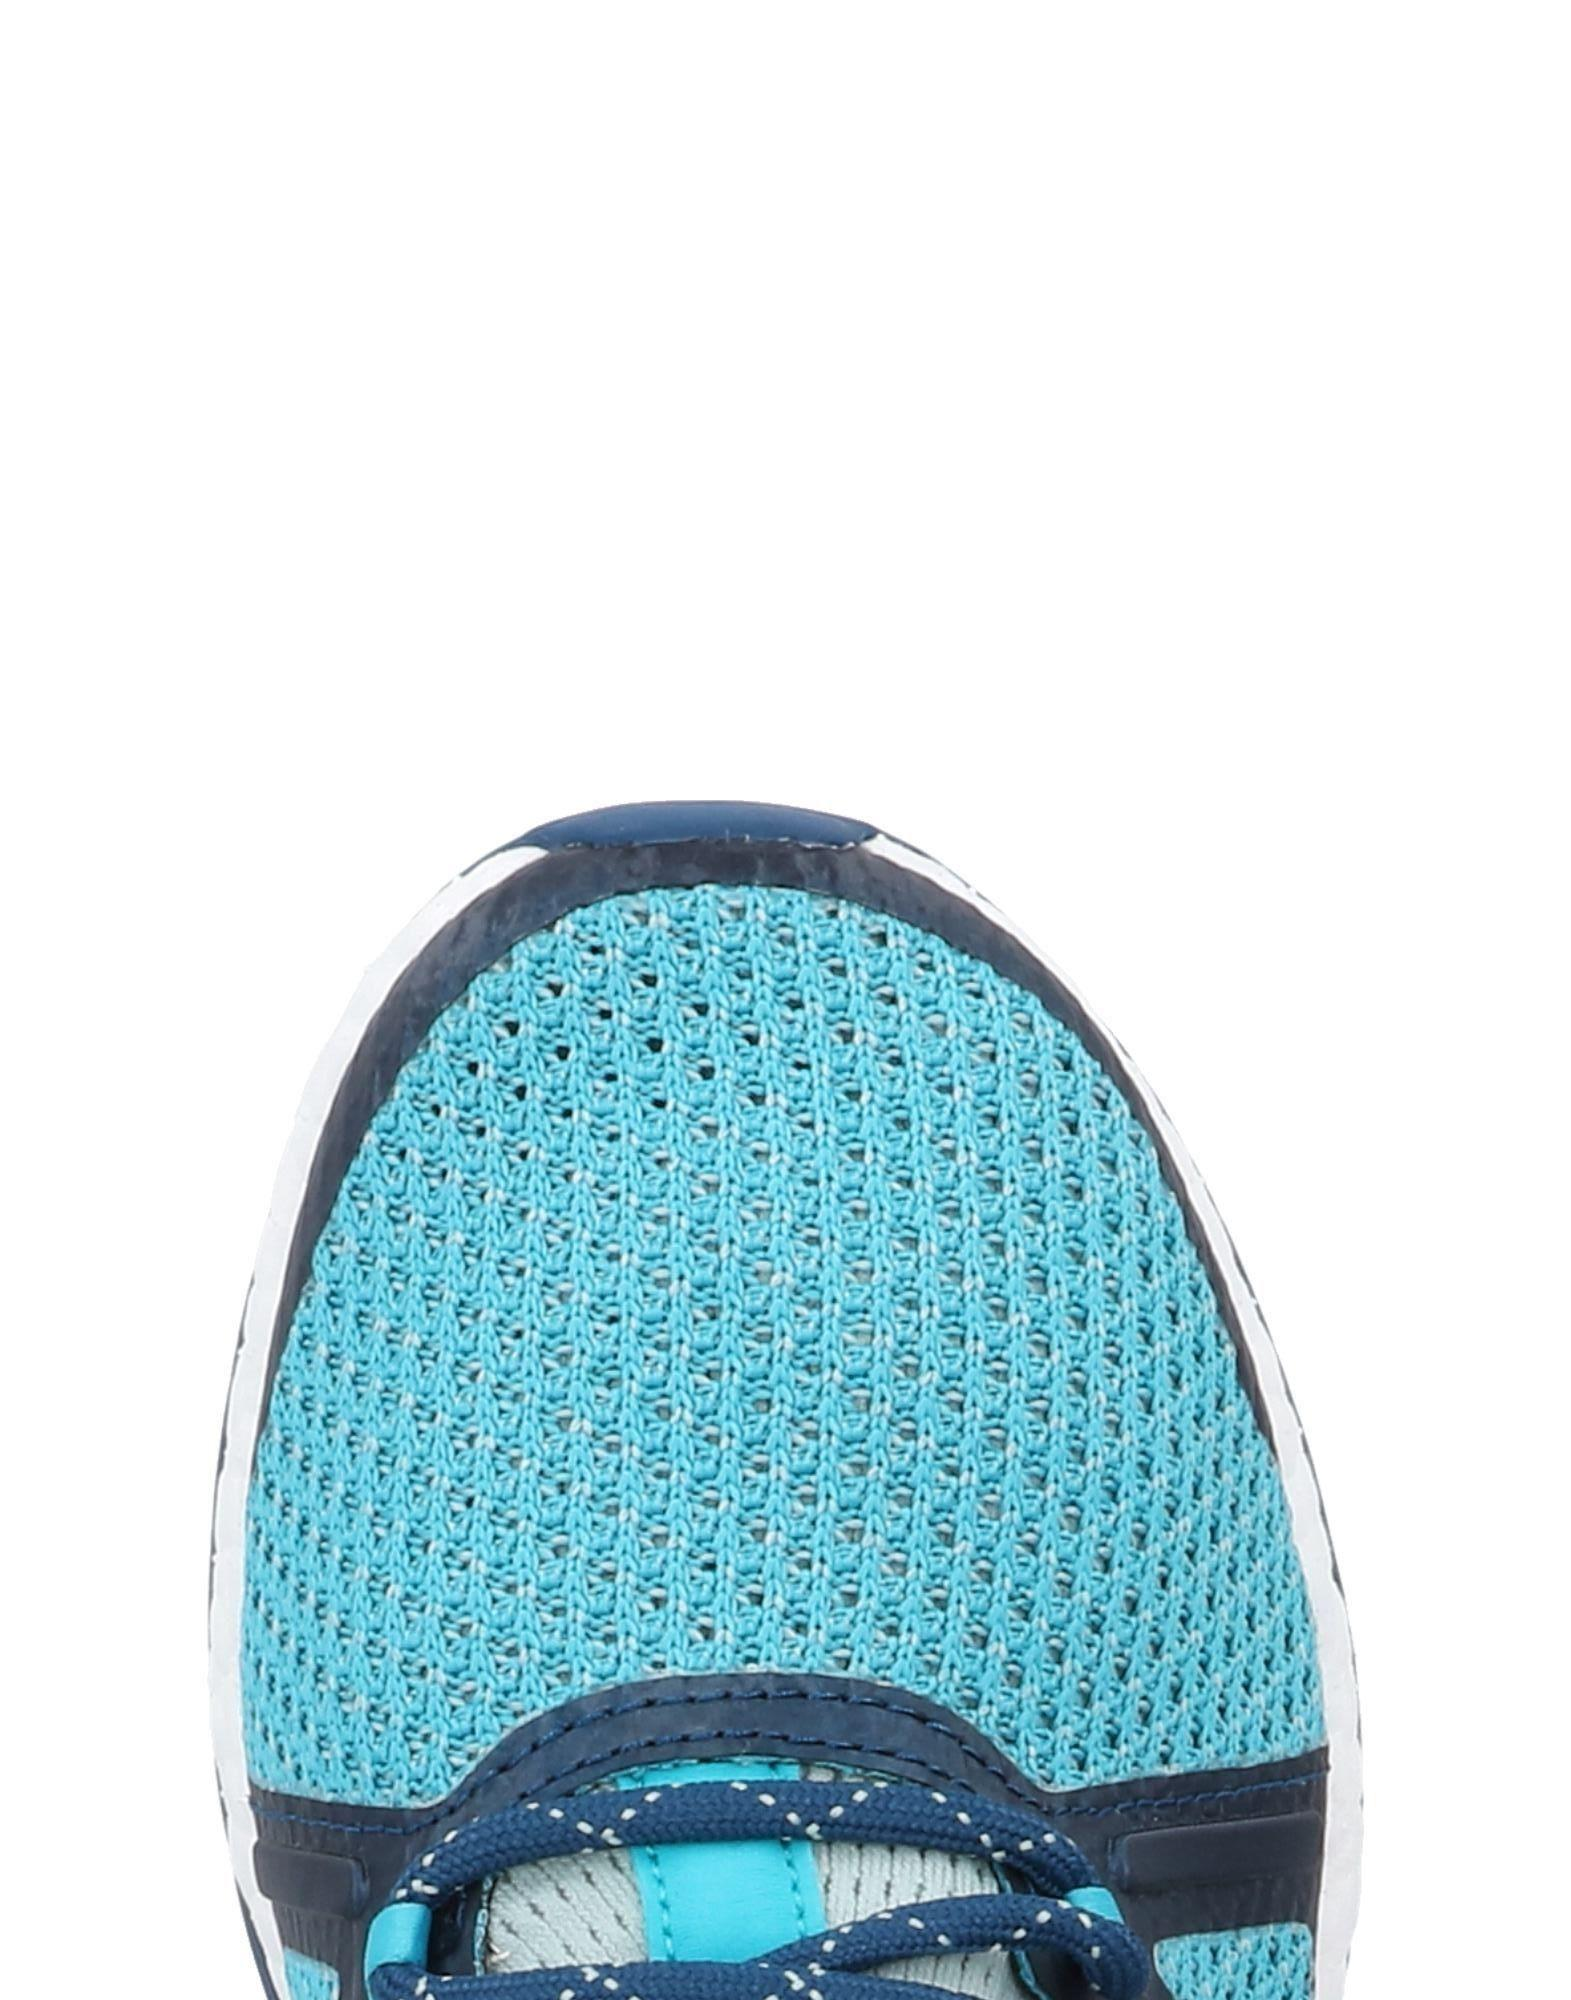 adidas Rubber Low-tops & Sneakers in Turquoise (Blue)